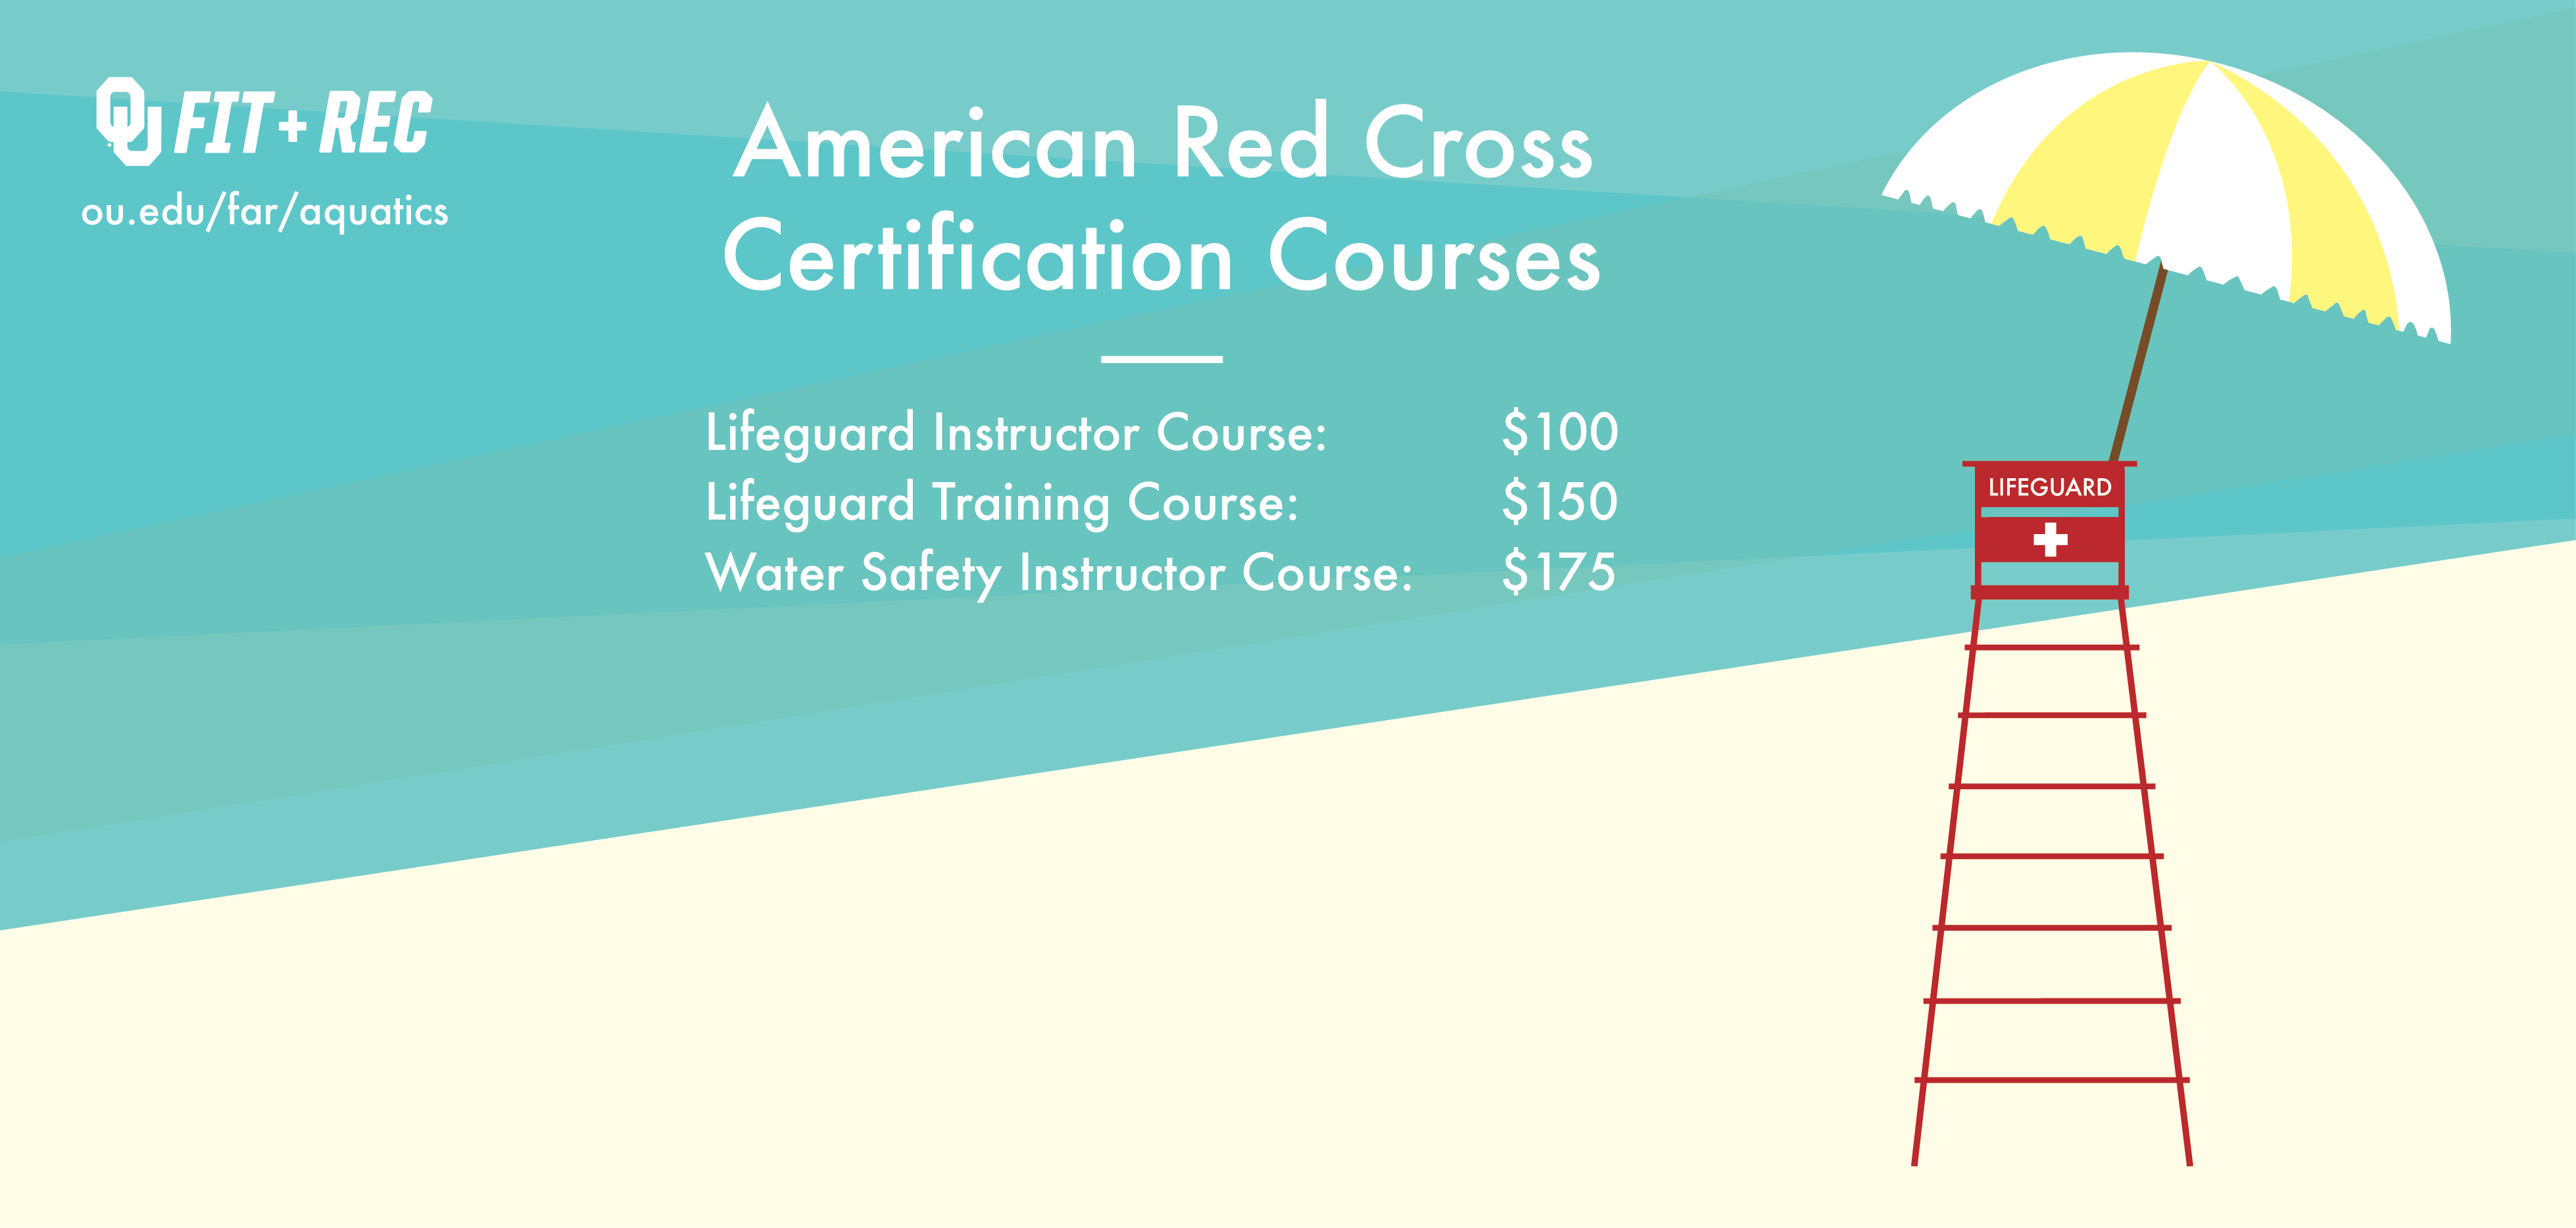 American Red Cross Certification Courses